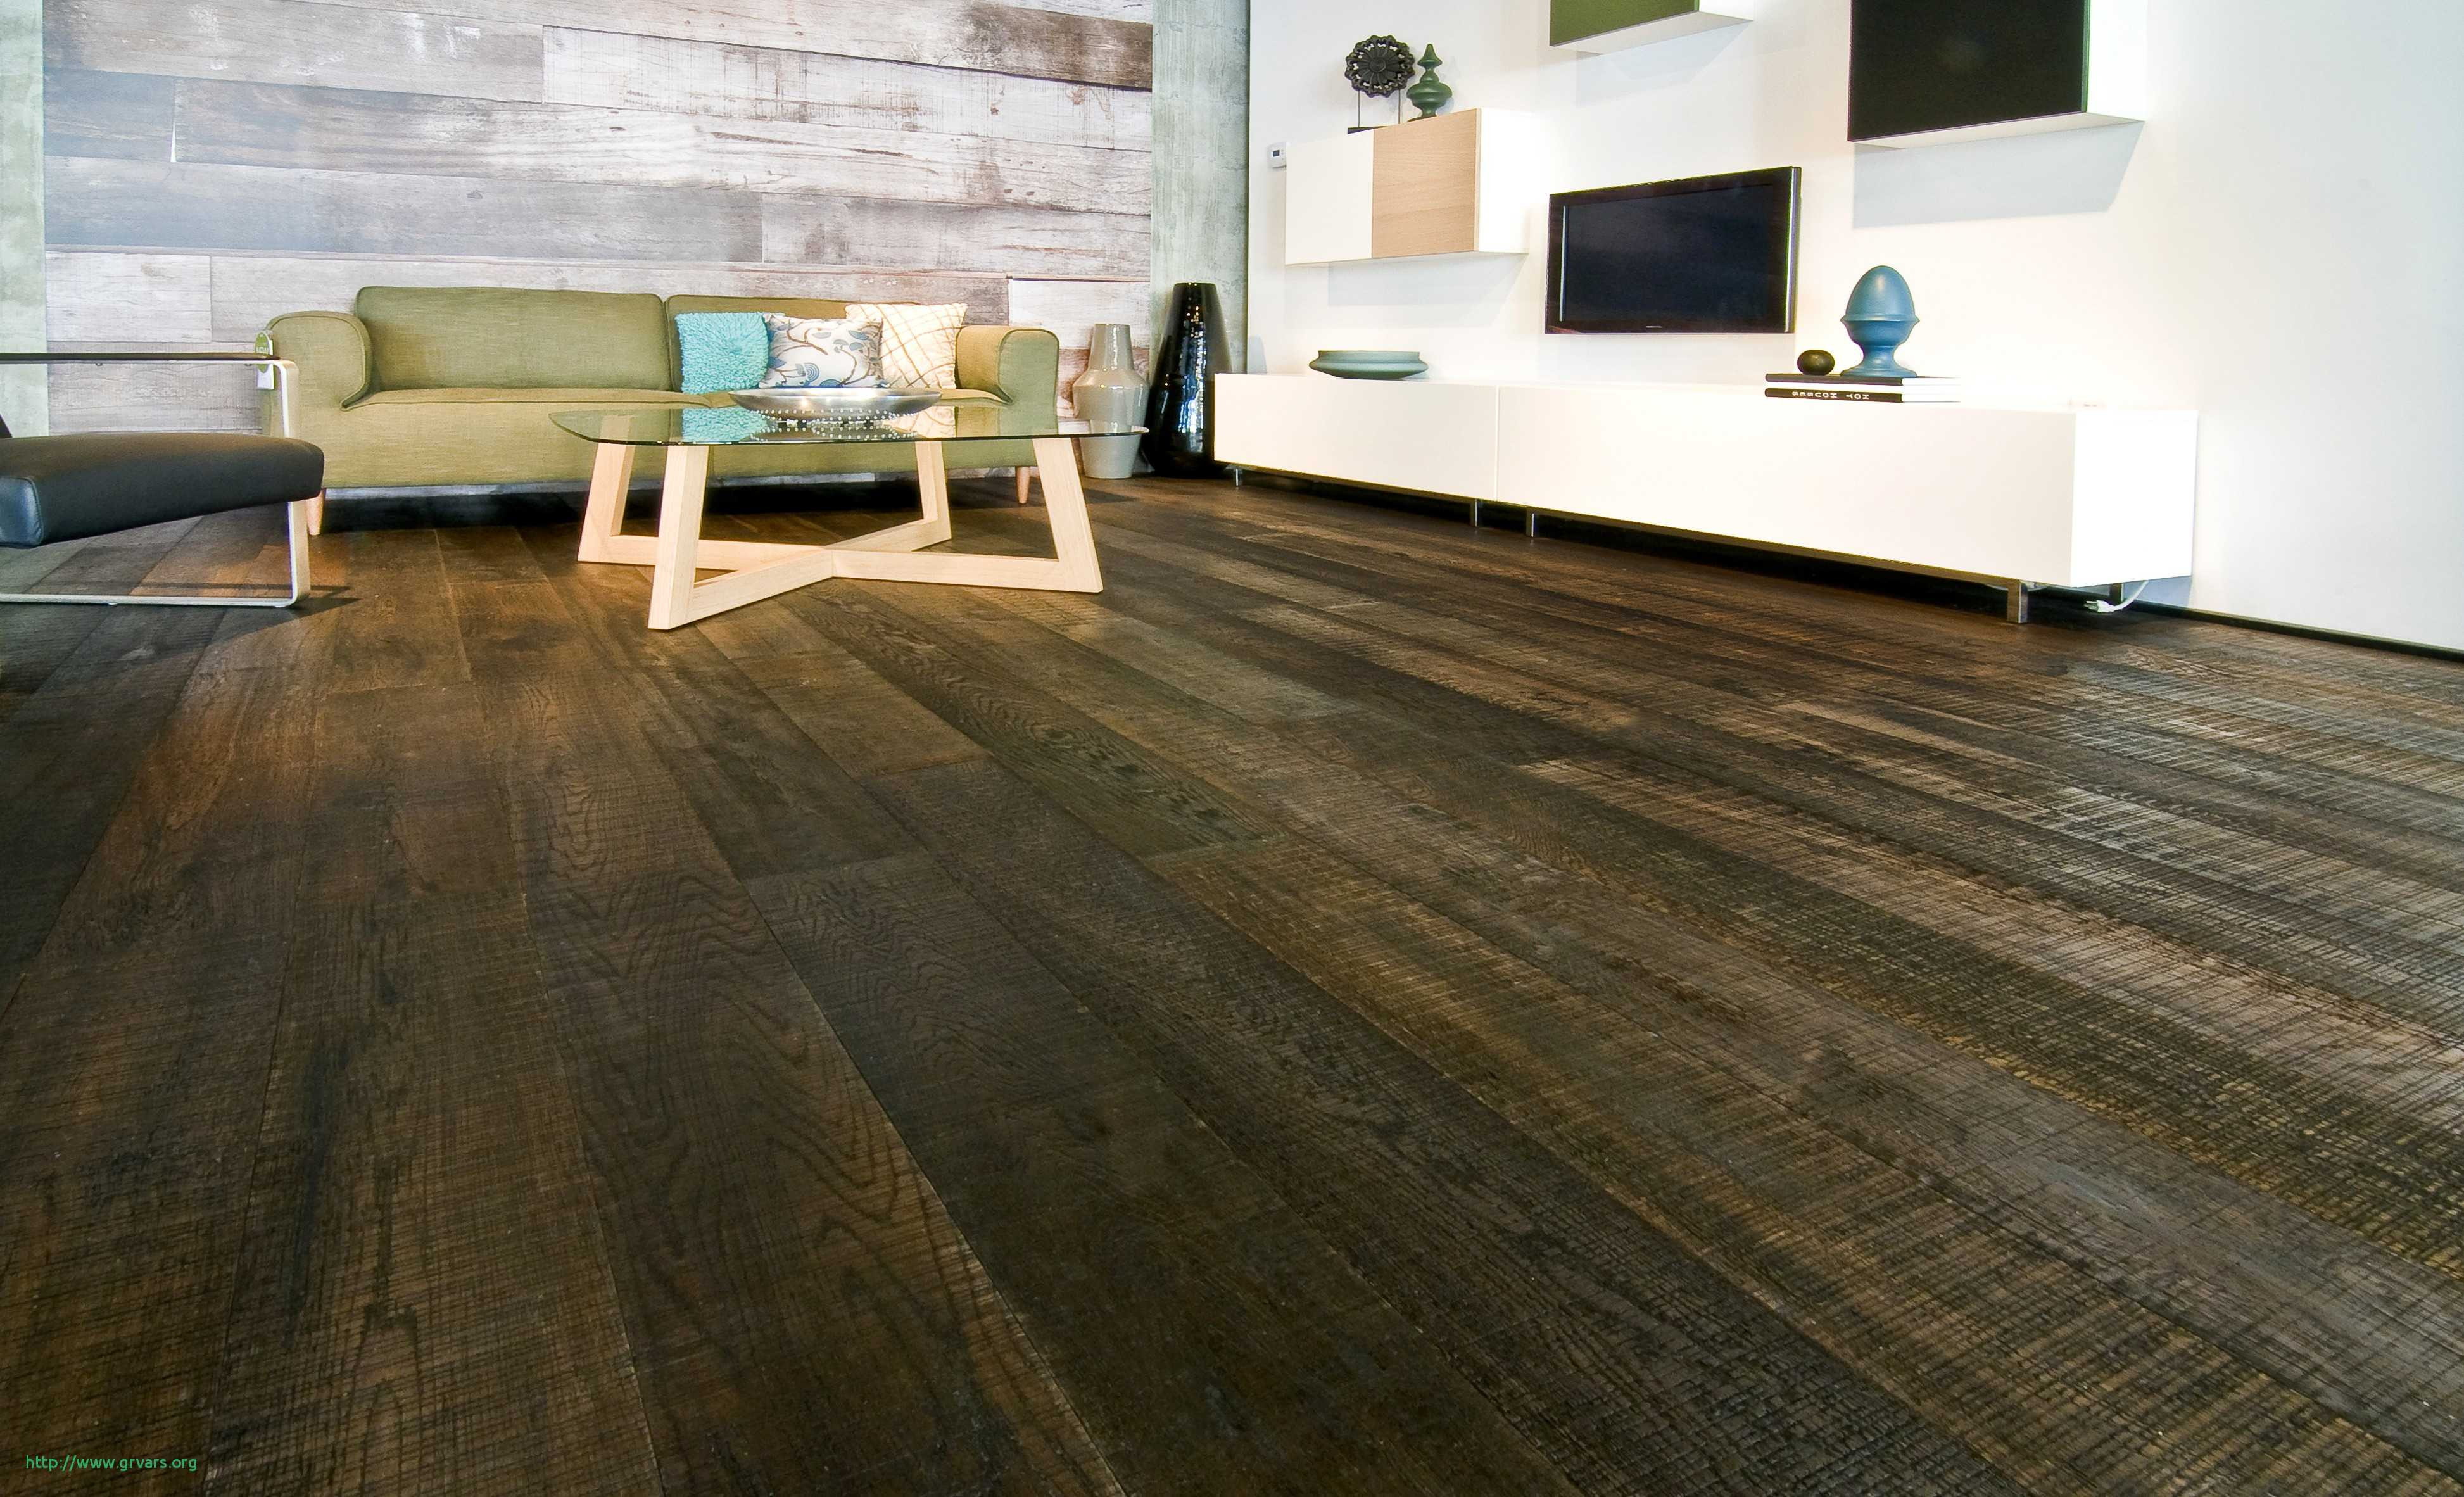 hardwood flooring wholesale prices of what is the price floor luxe engaging discount hardwood flooring 5 with regard to what is the price floor luxe engaging discount hardwood flooring 5 where to buy inspirational 0d